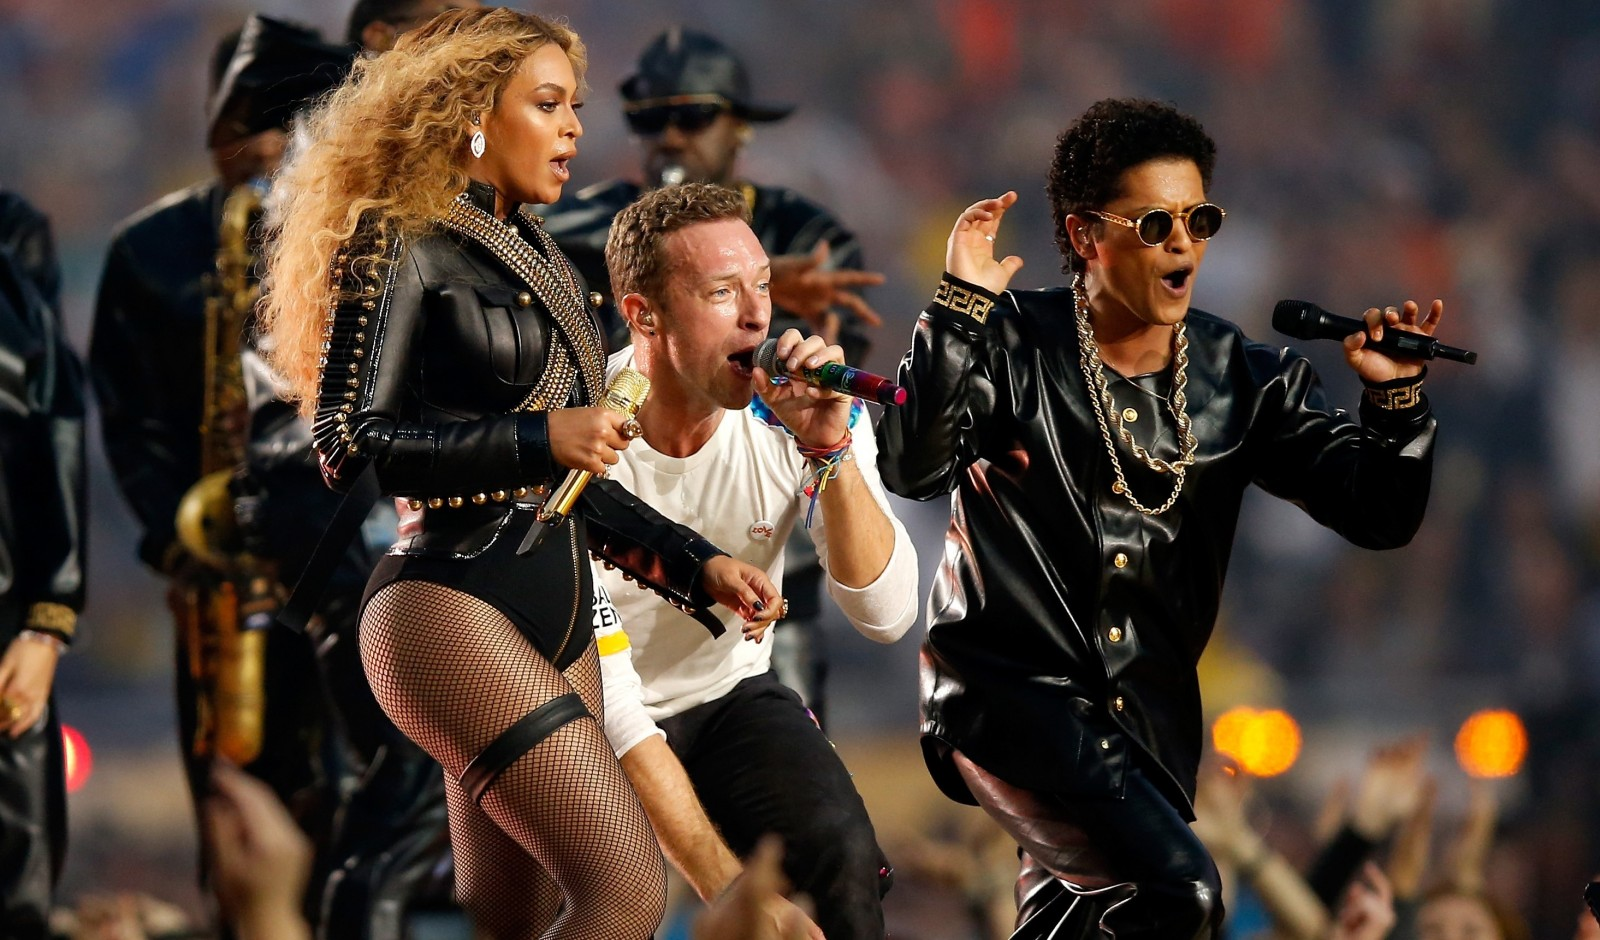 A trio of stars: Beyonce, Chris Martin of Coldplay and Bruno Mars worked together for a song at halftime. (Getty Images)